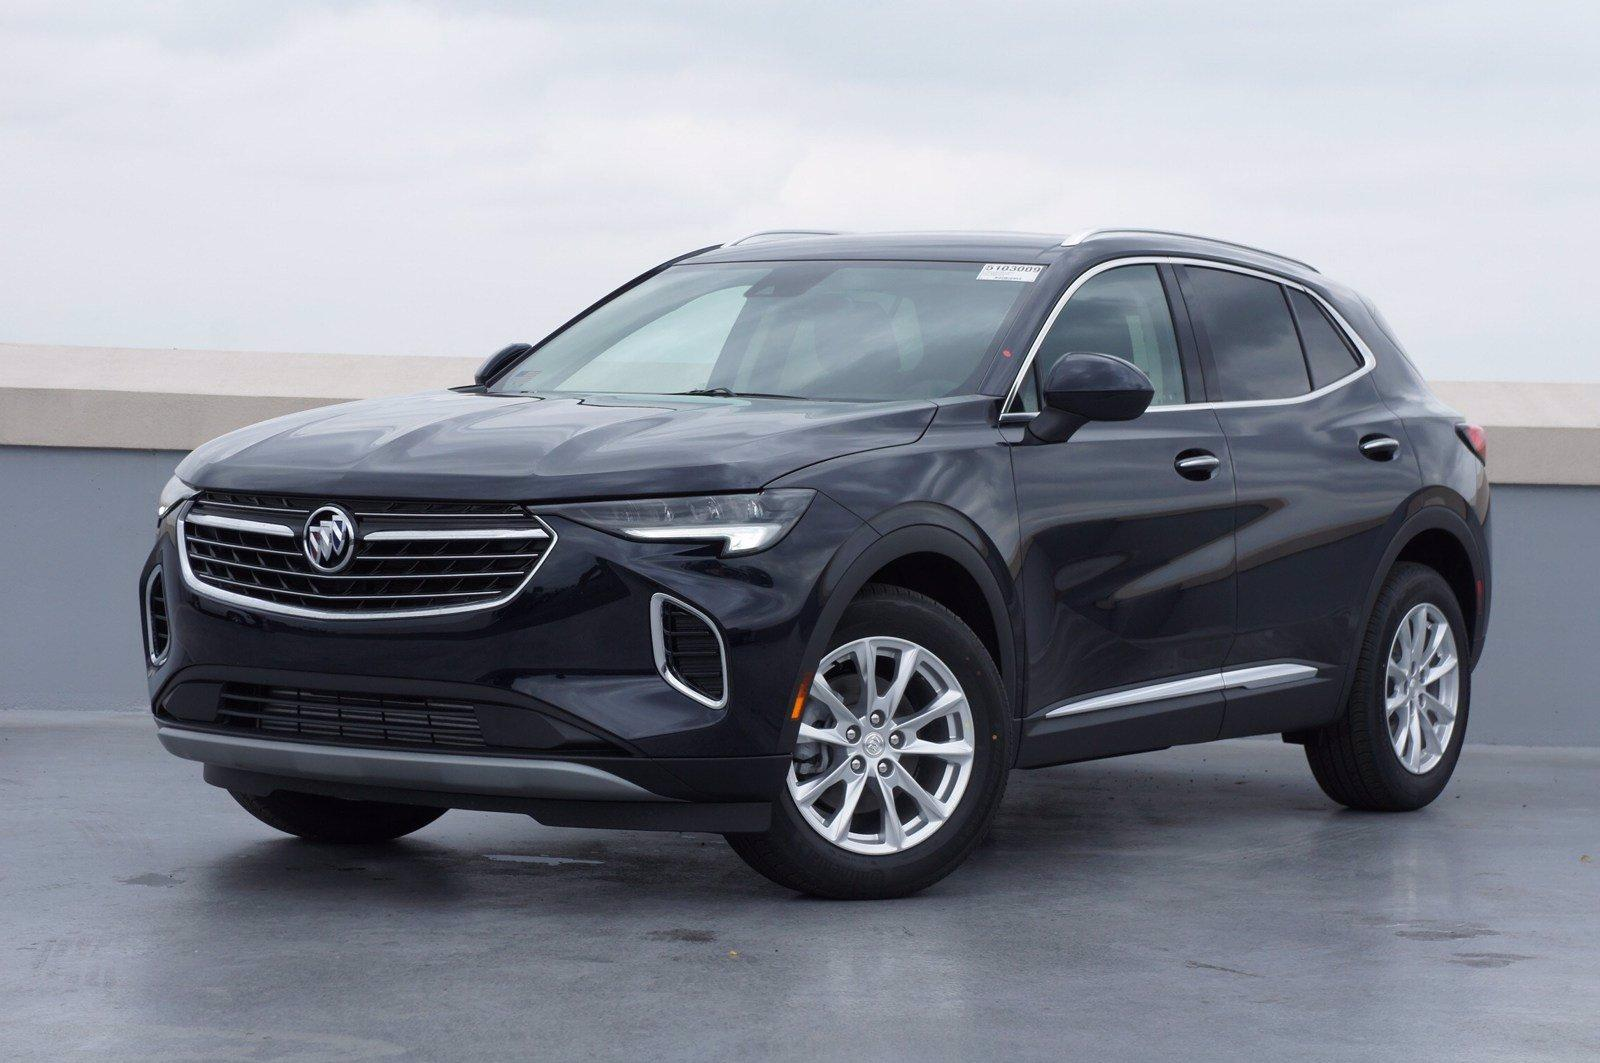 2021 Buick Envision Vehicle Photo in Dallas, TX 75209